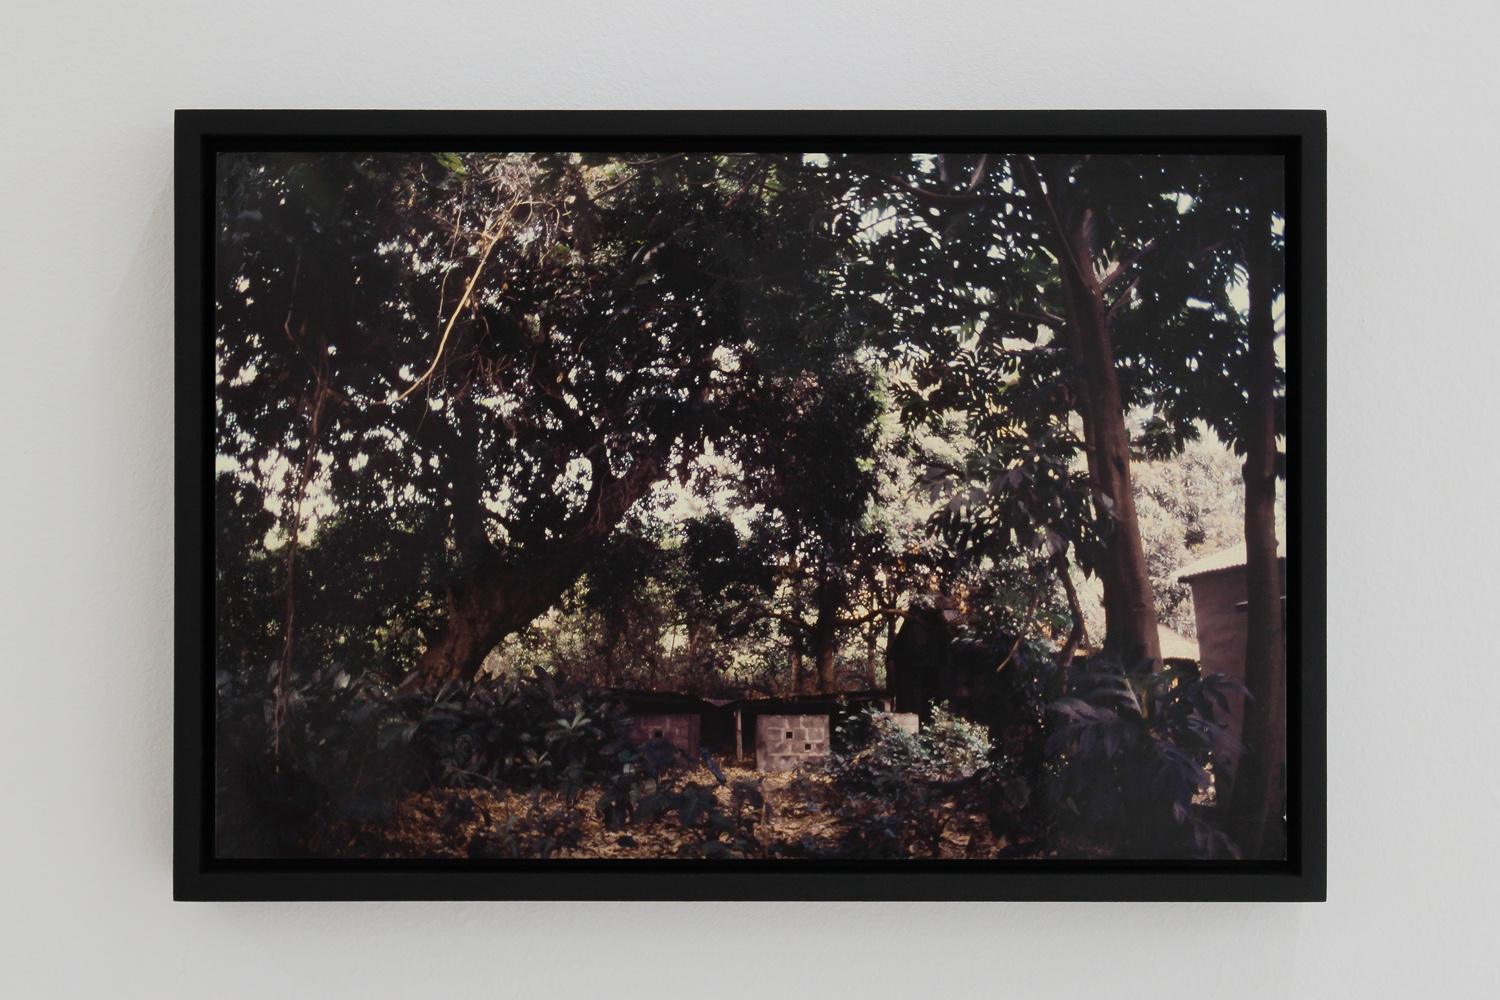 Brice Guilbert kari dodo Inkjet print from Jacques Guilbert photographs